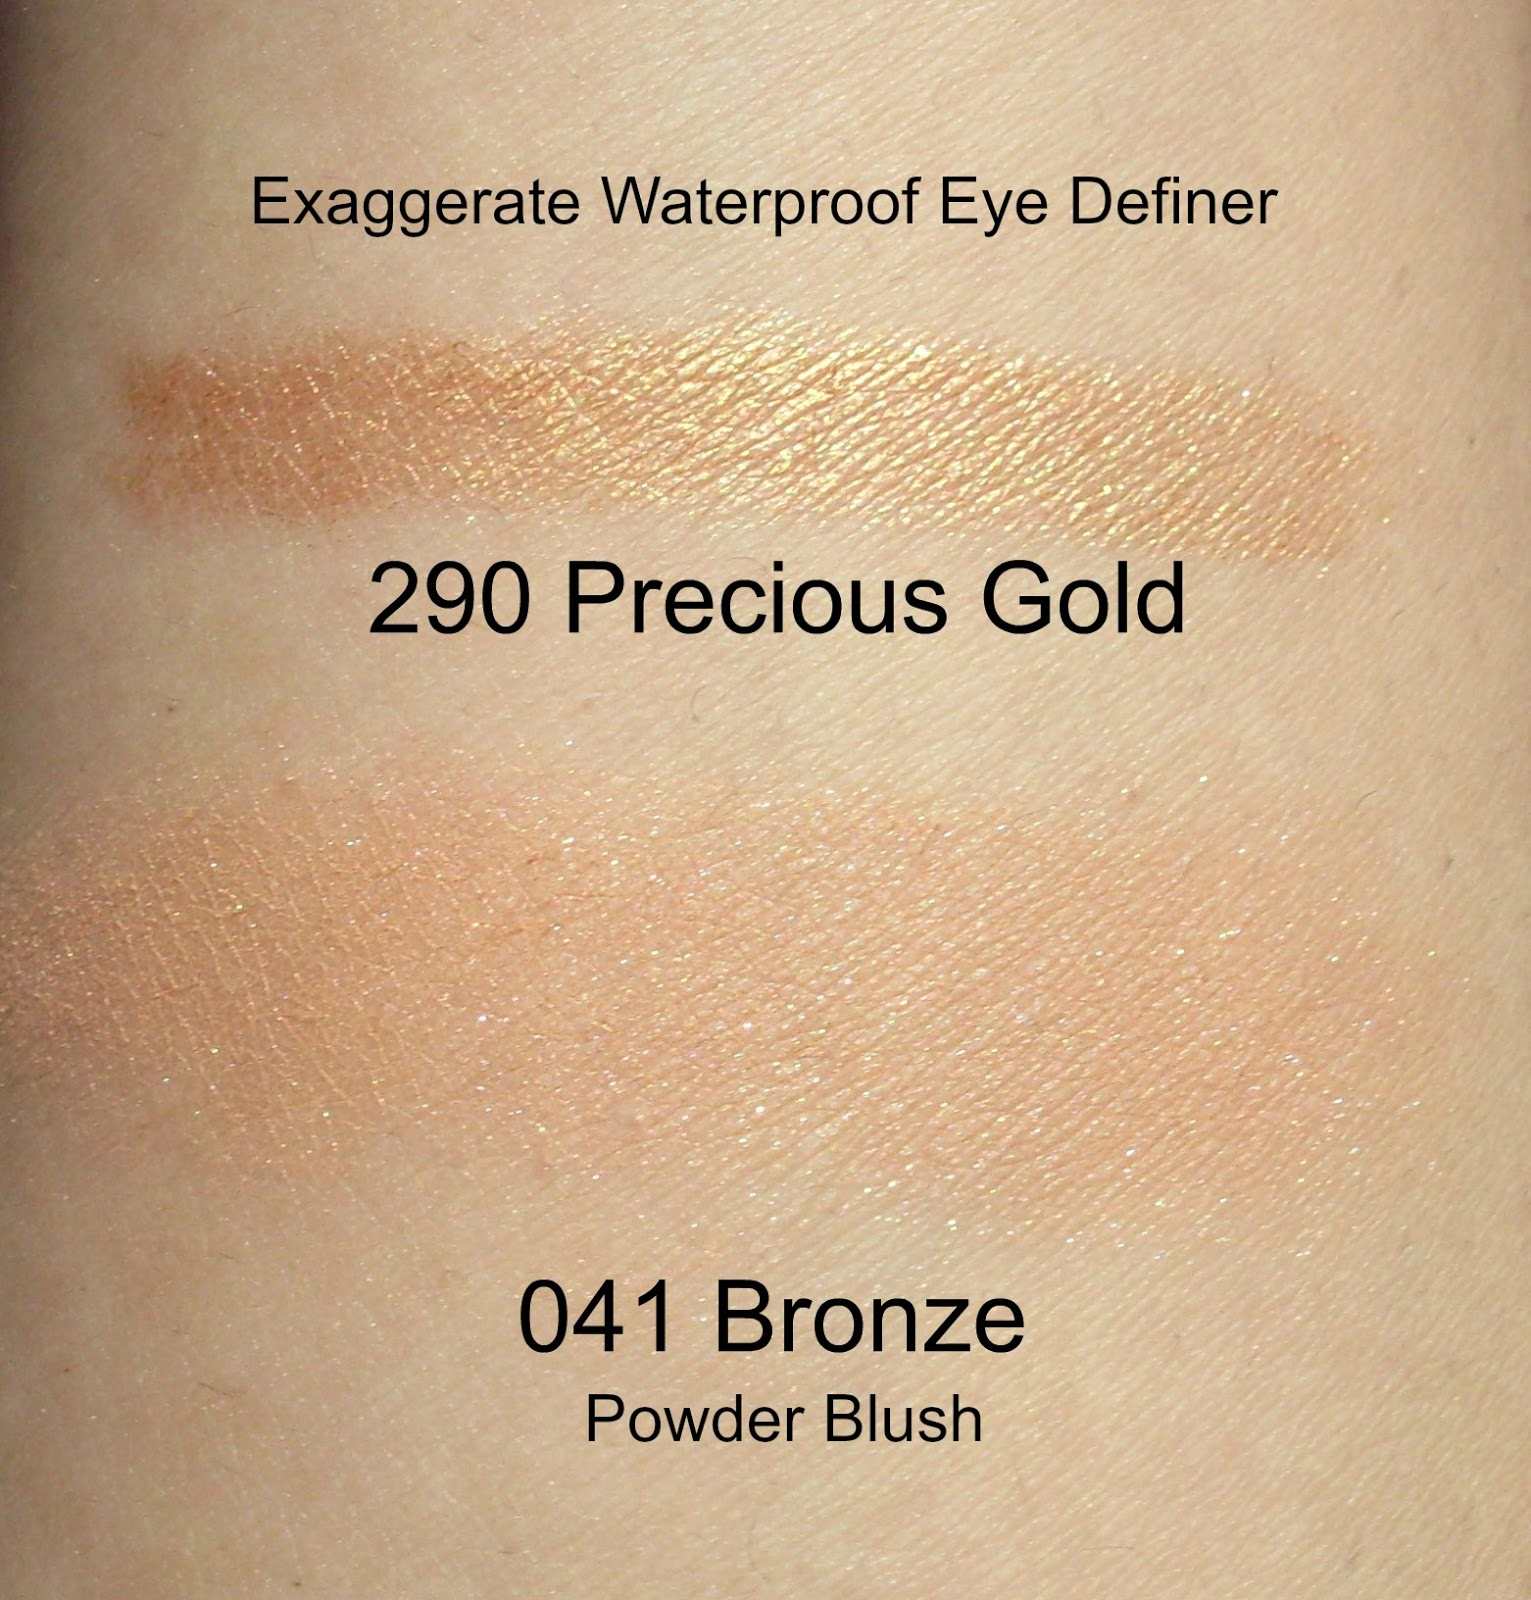 Rimmel Exxagerate eye definer swatch in precious gold and powder blush in 041 bronze